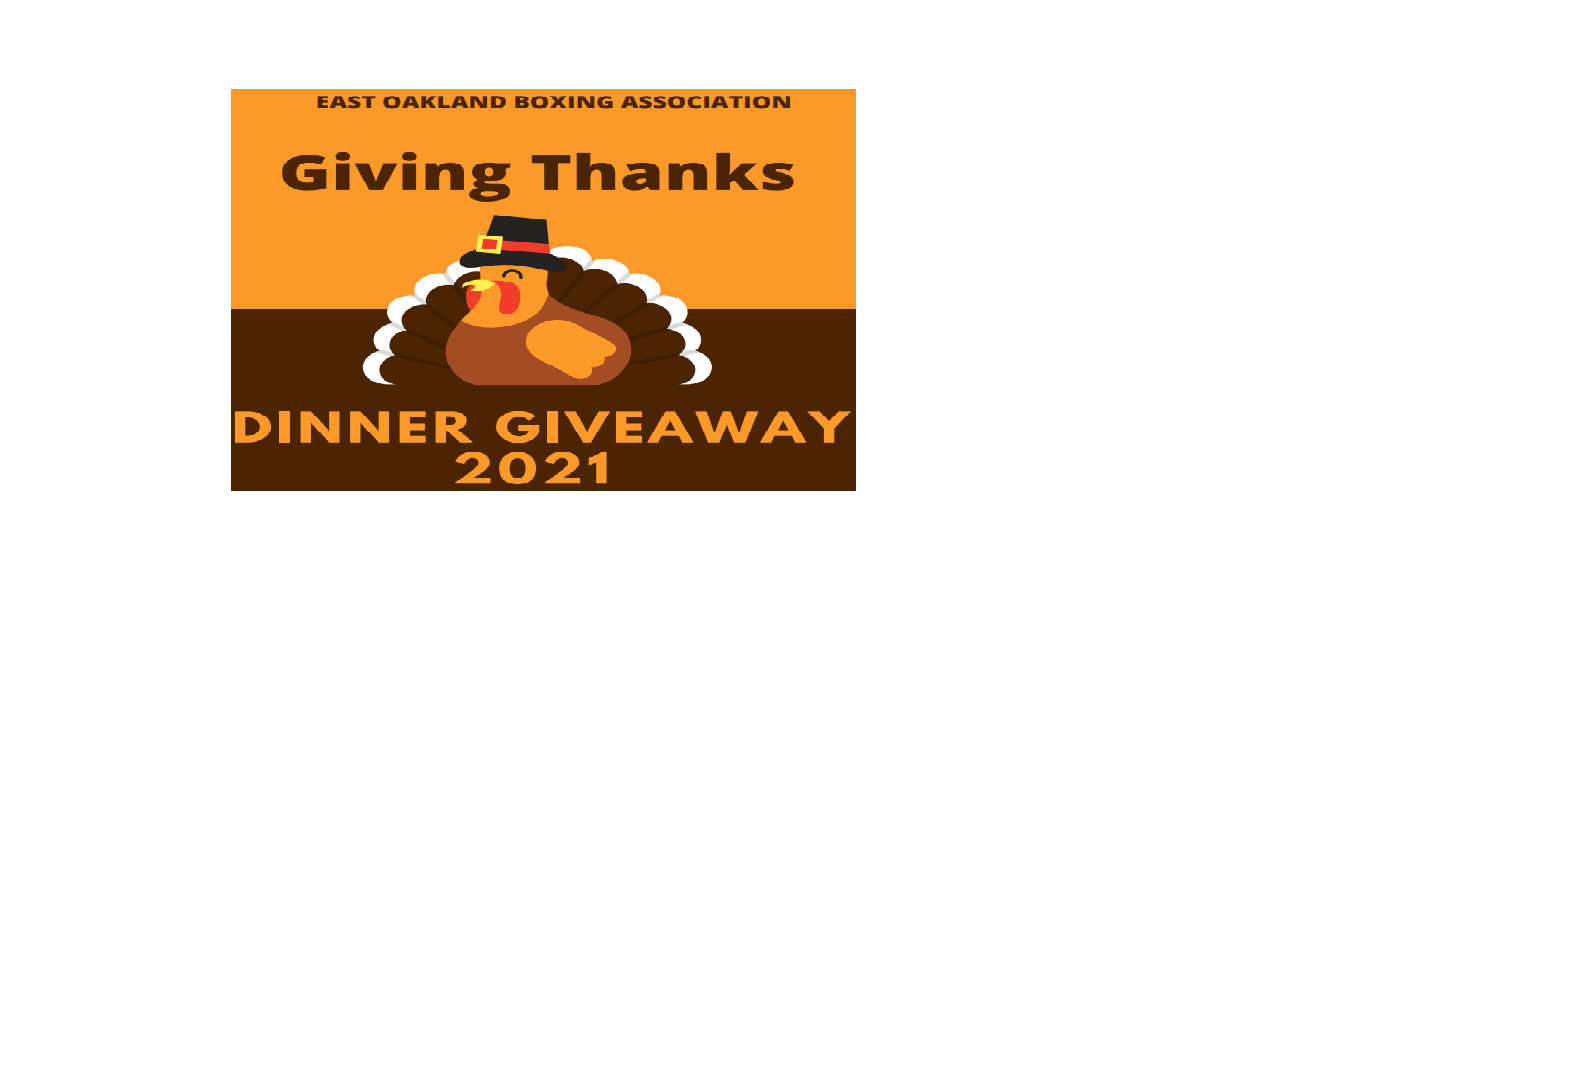 Please join EOBA and EBCOM to celebrate this season by providing 1,000 Oakland families with a holiday dinner including all the trimmings. image